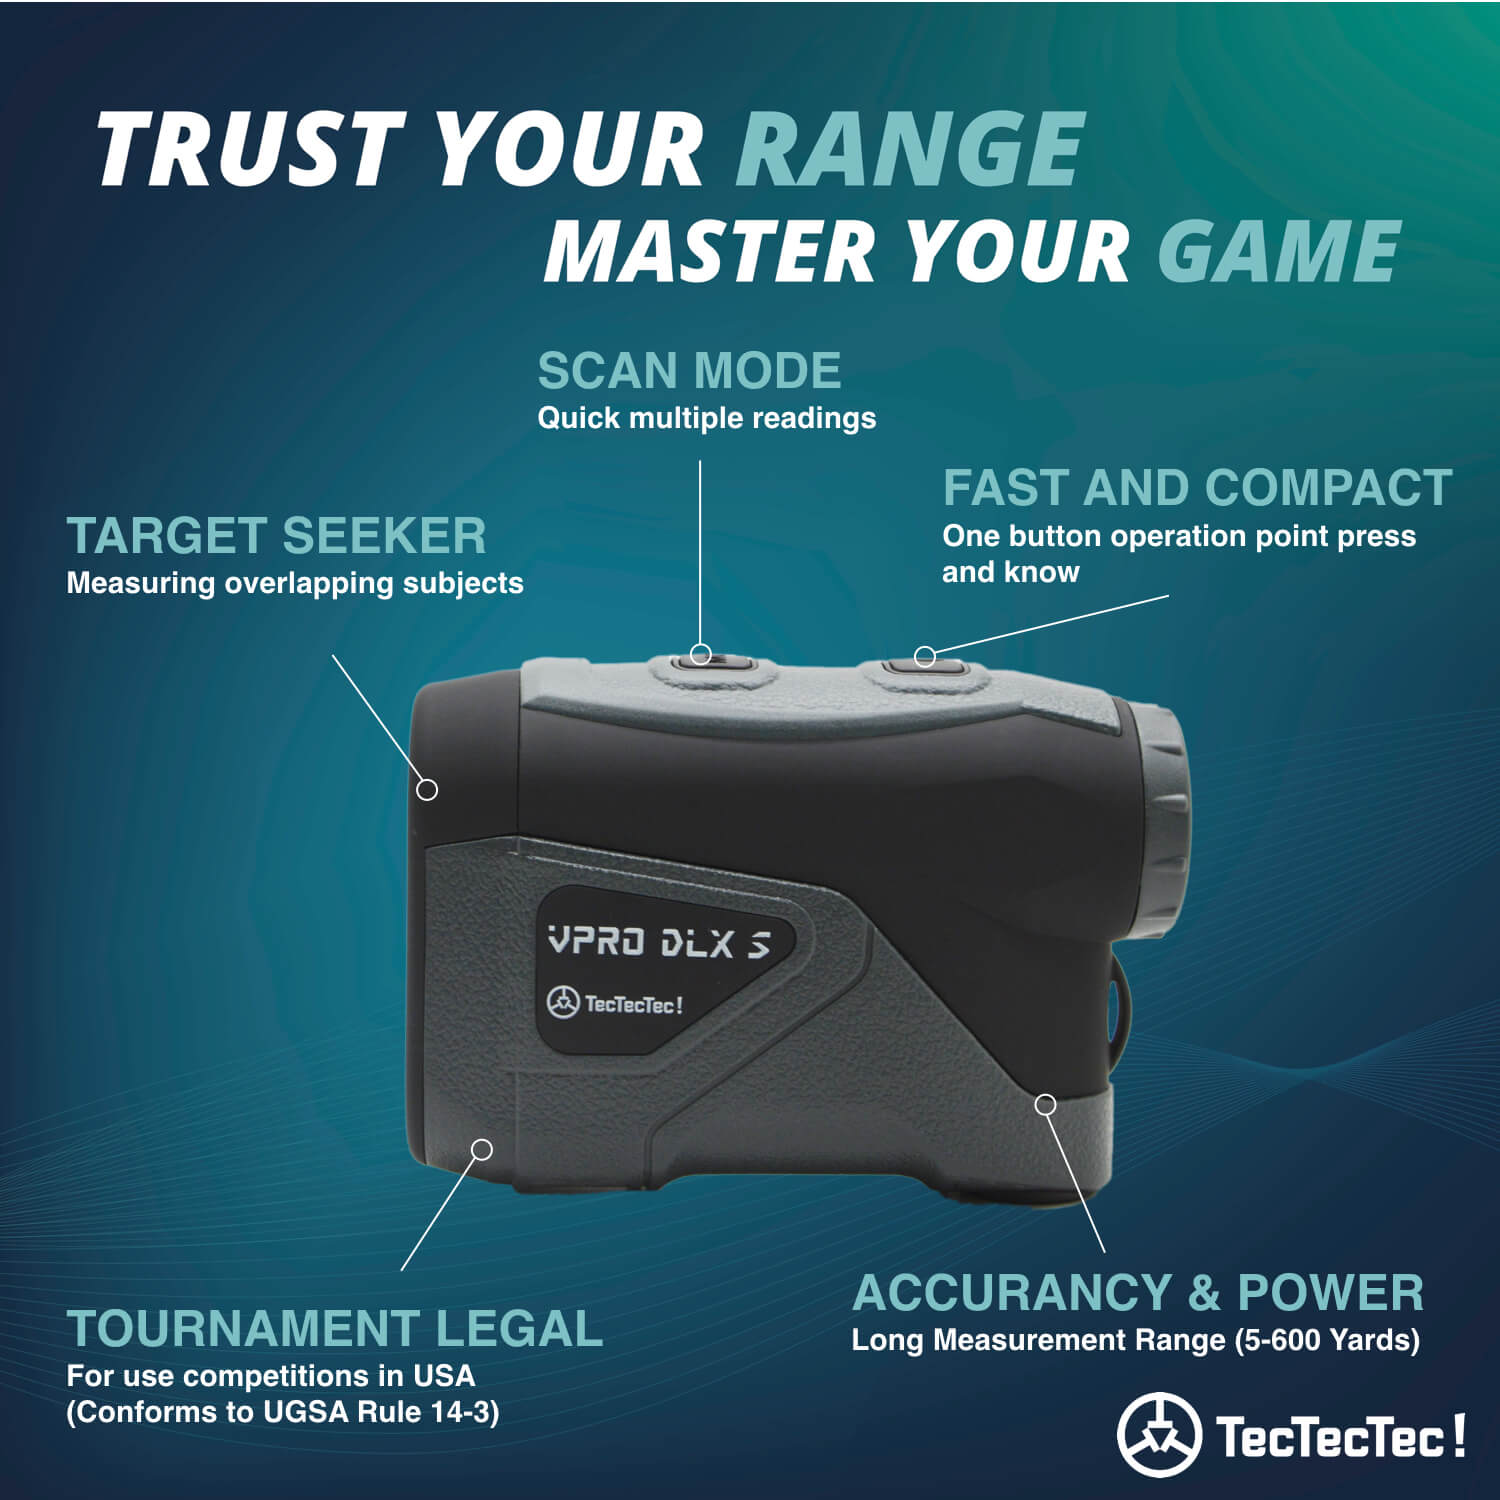 TecTecTec Trust Your Range Master Your Game VPRO DLXS Rangefinder Technology